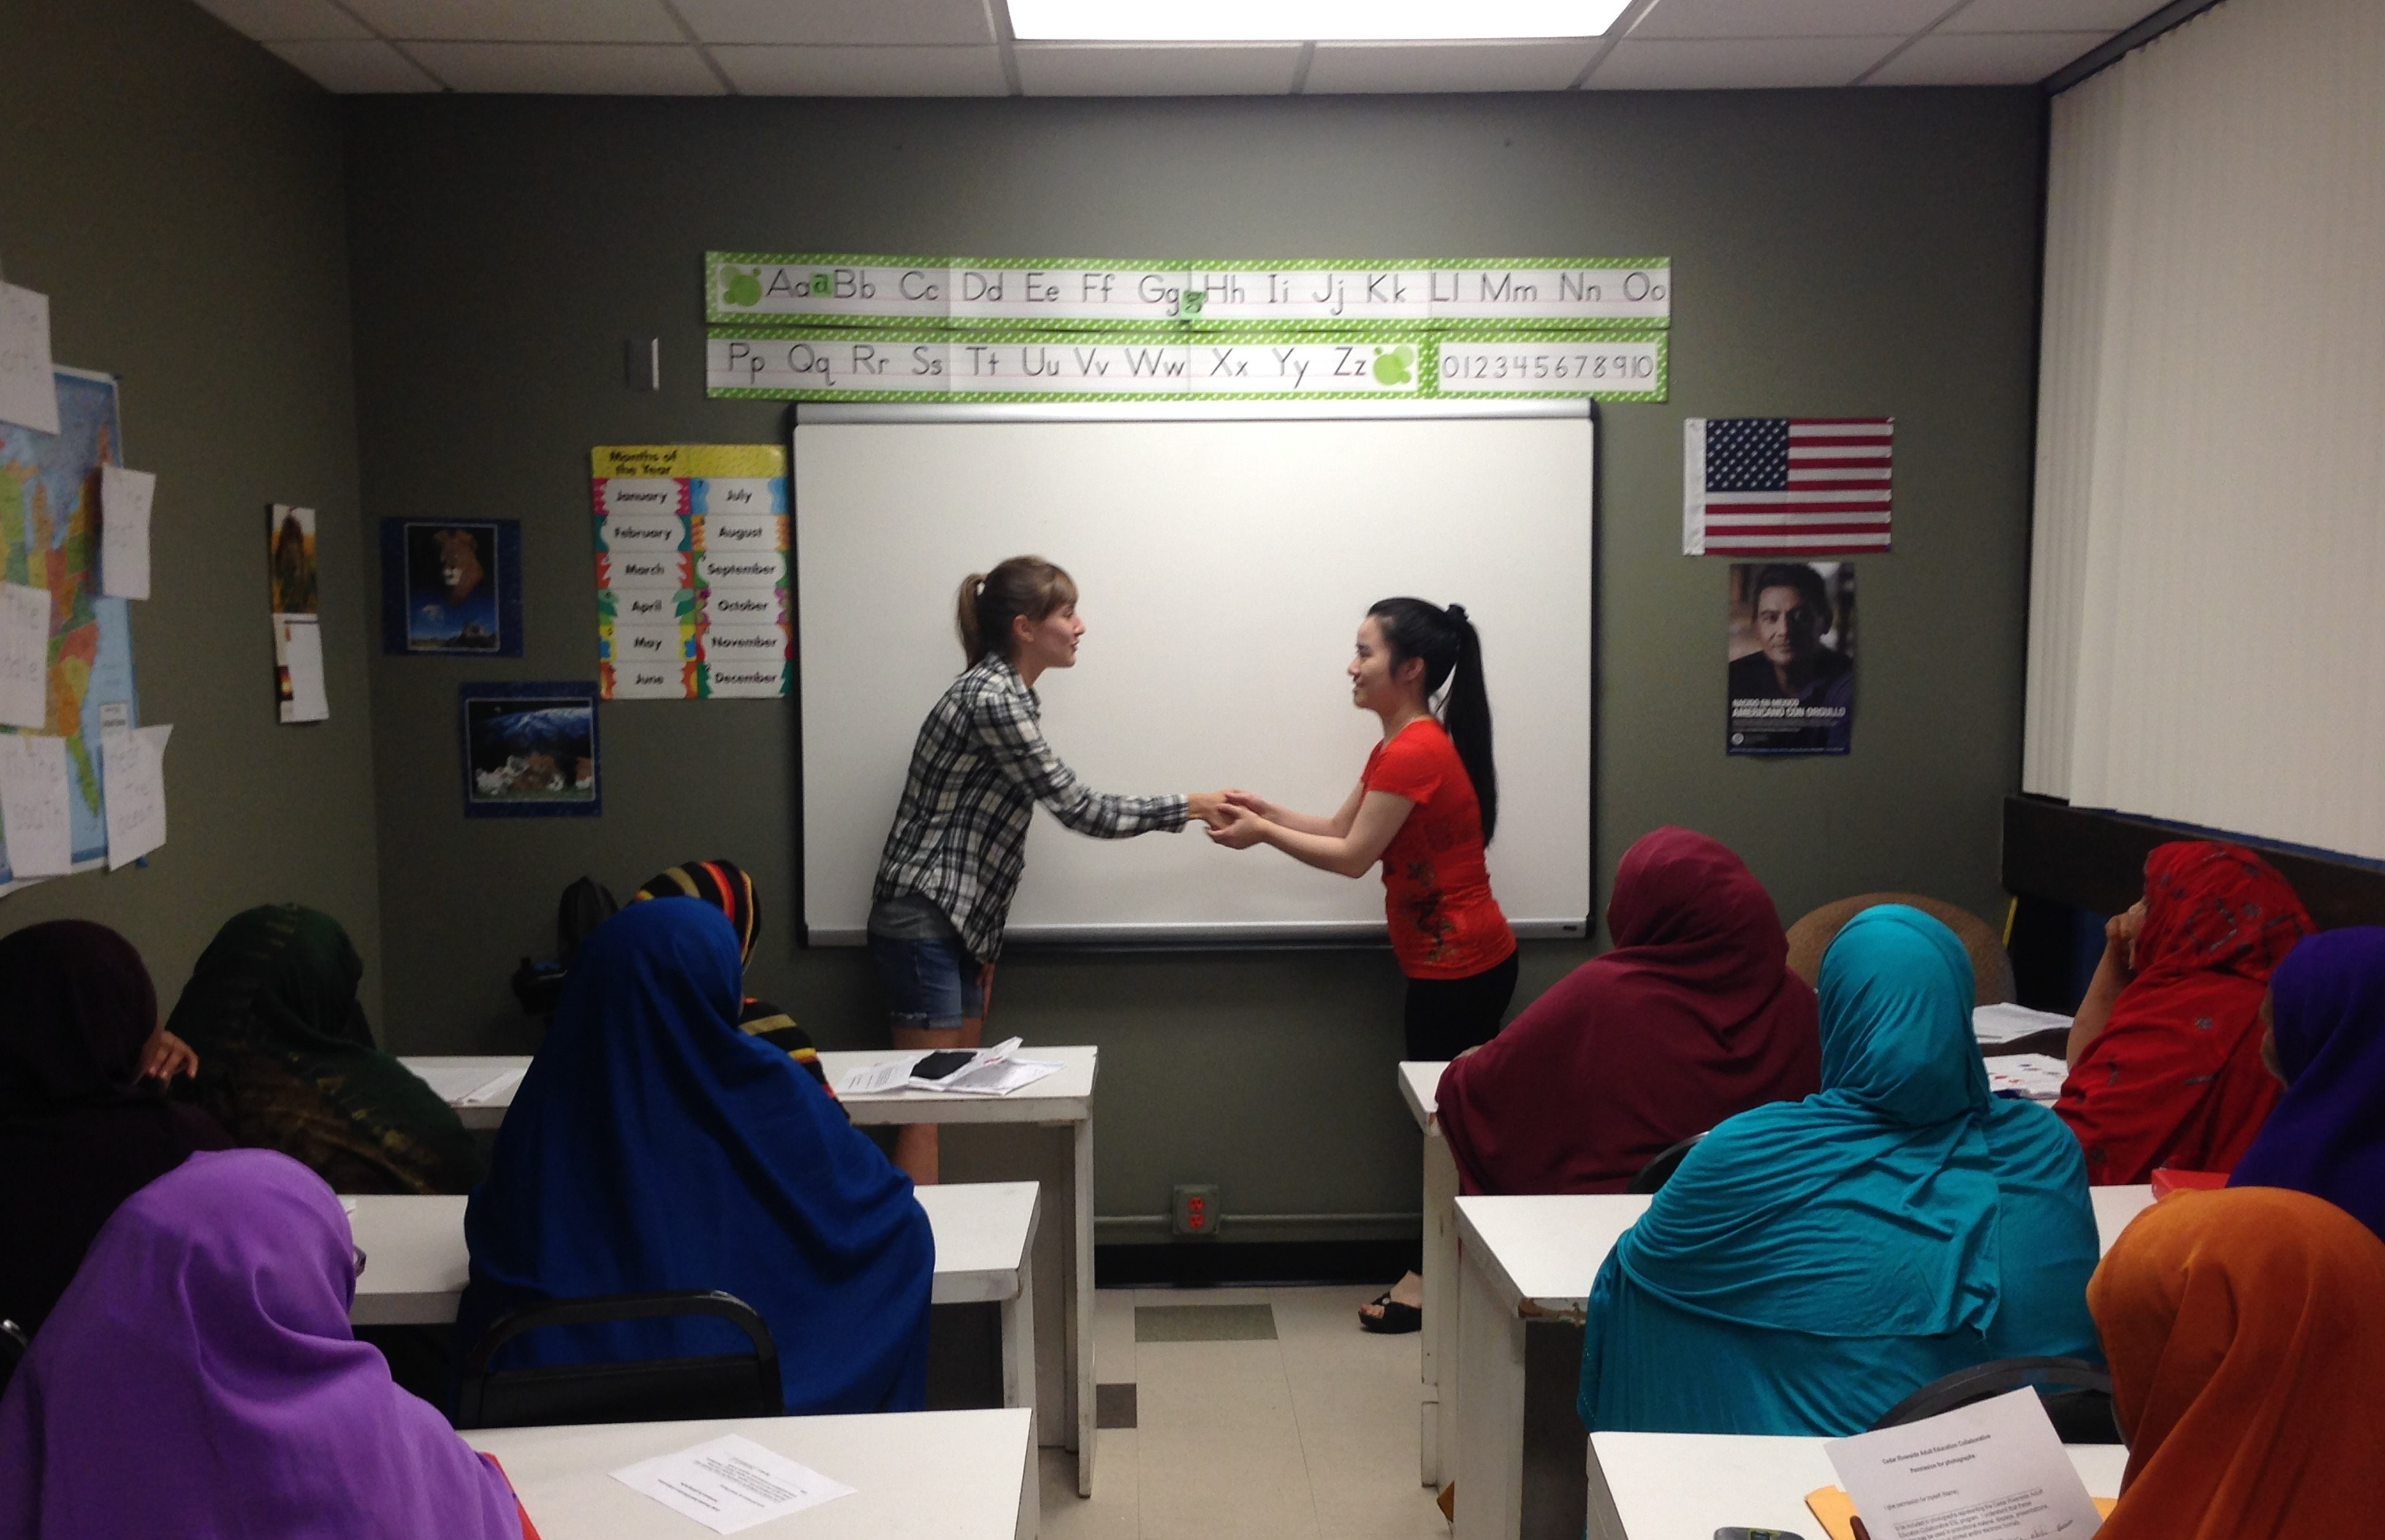 Volunteer shaking hands with a teacher at the front of the room